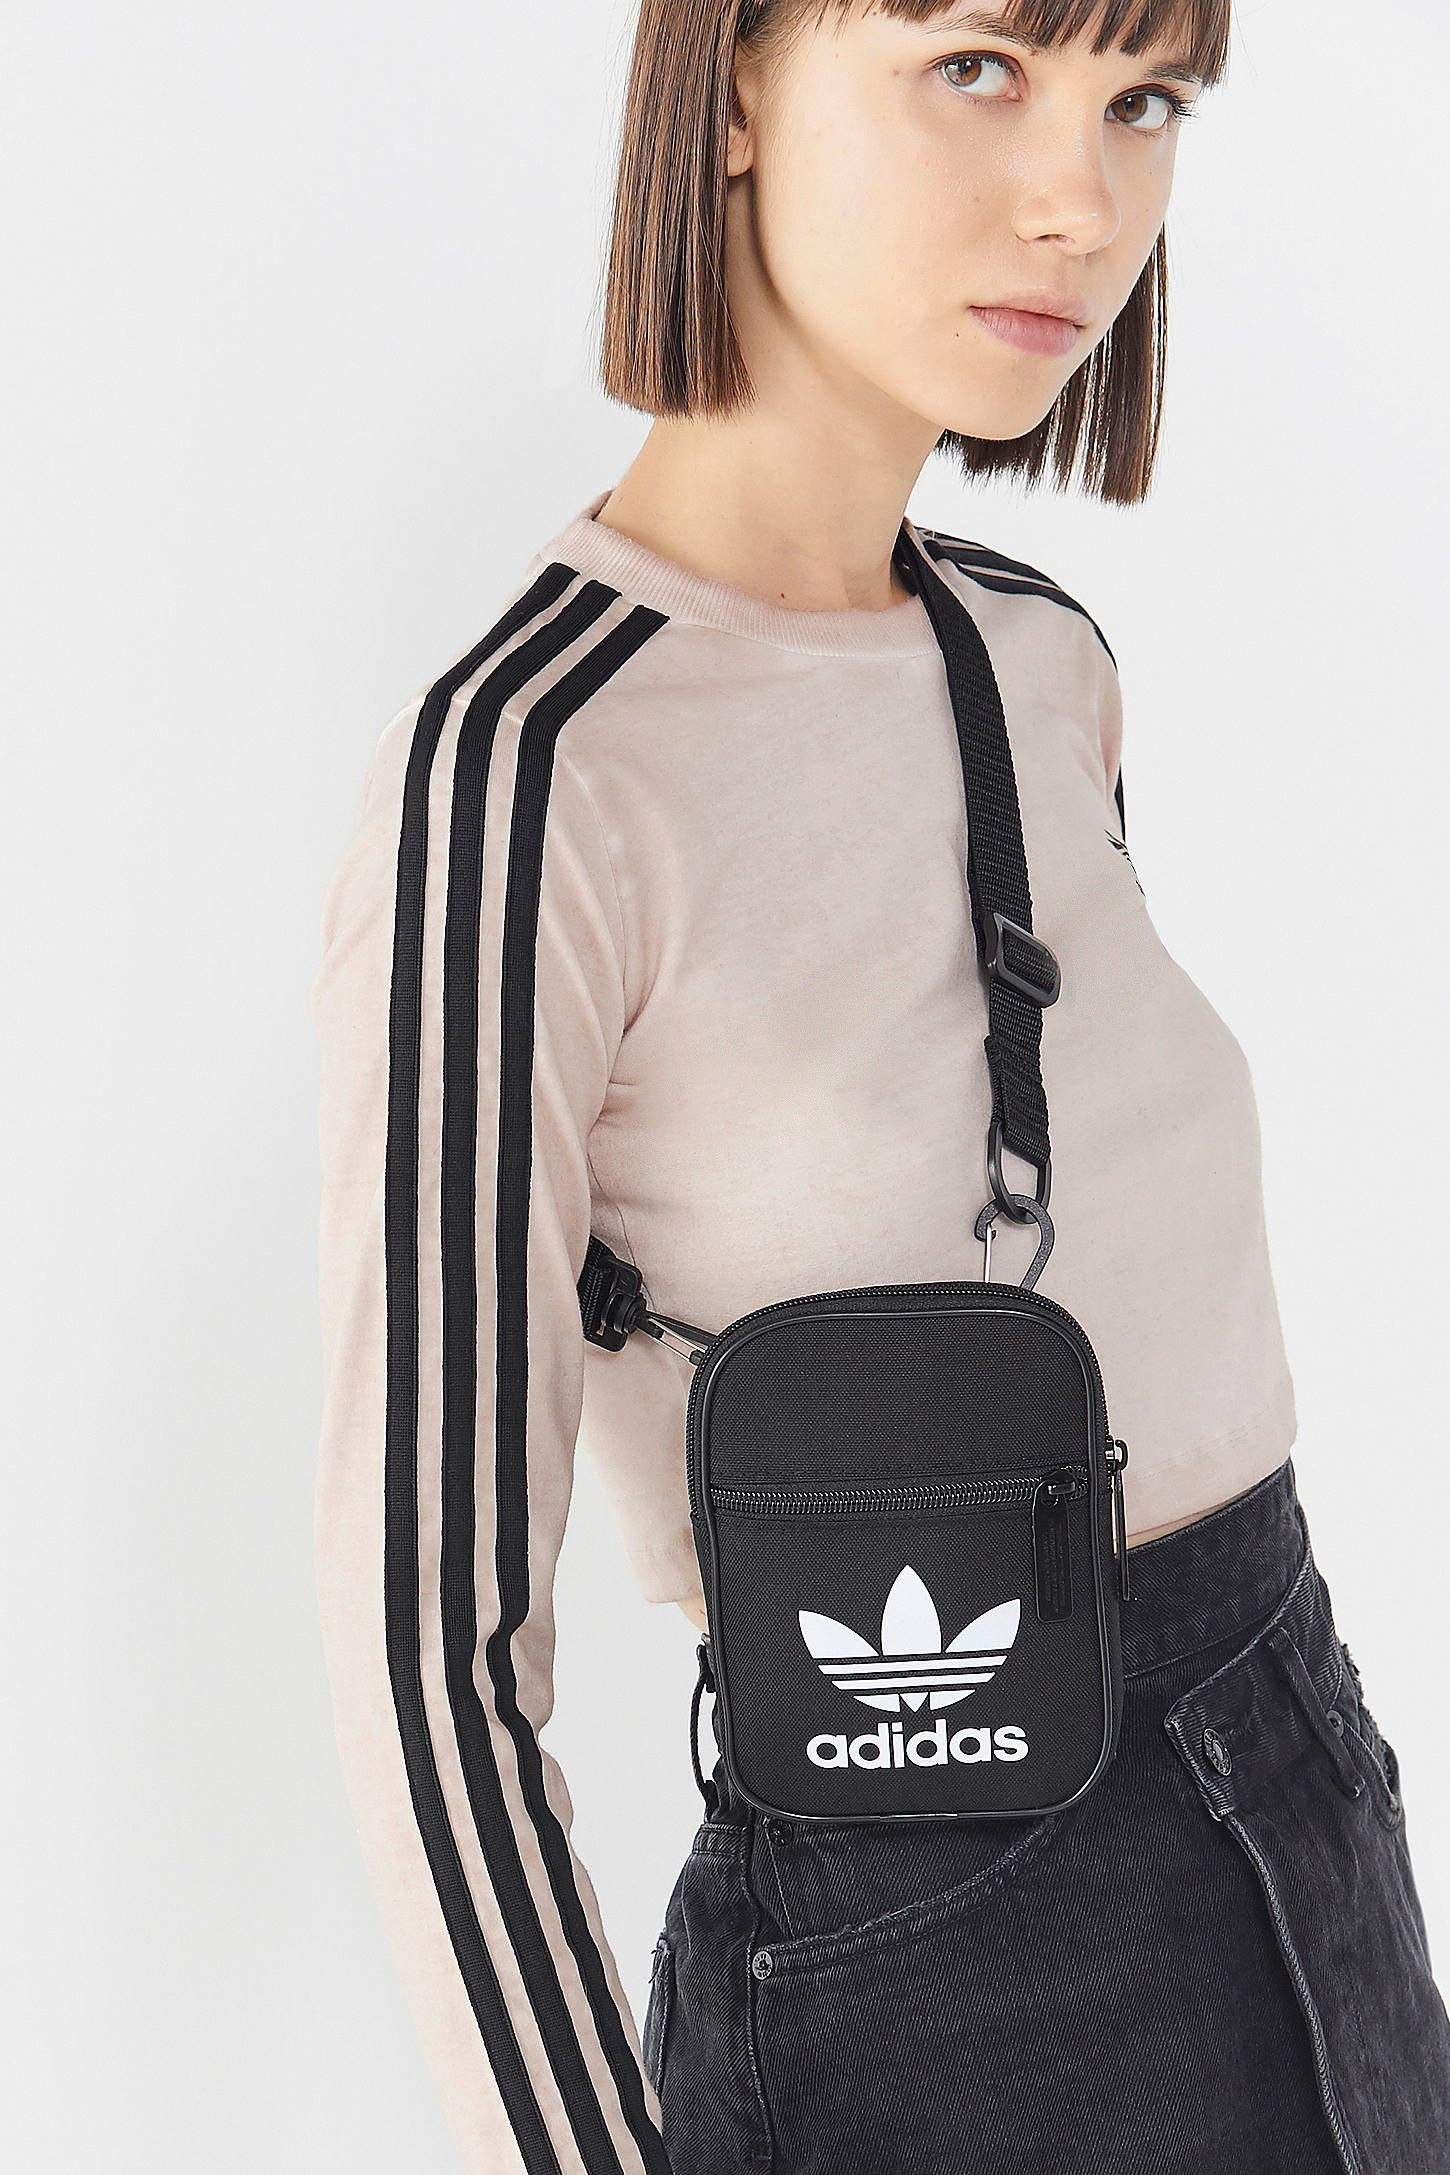 45d020eb3 adidas Originals Trefoil Festival Crossbody Bag | To Carry and Wear ...